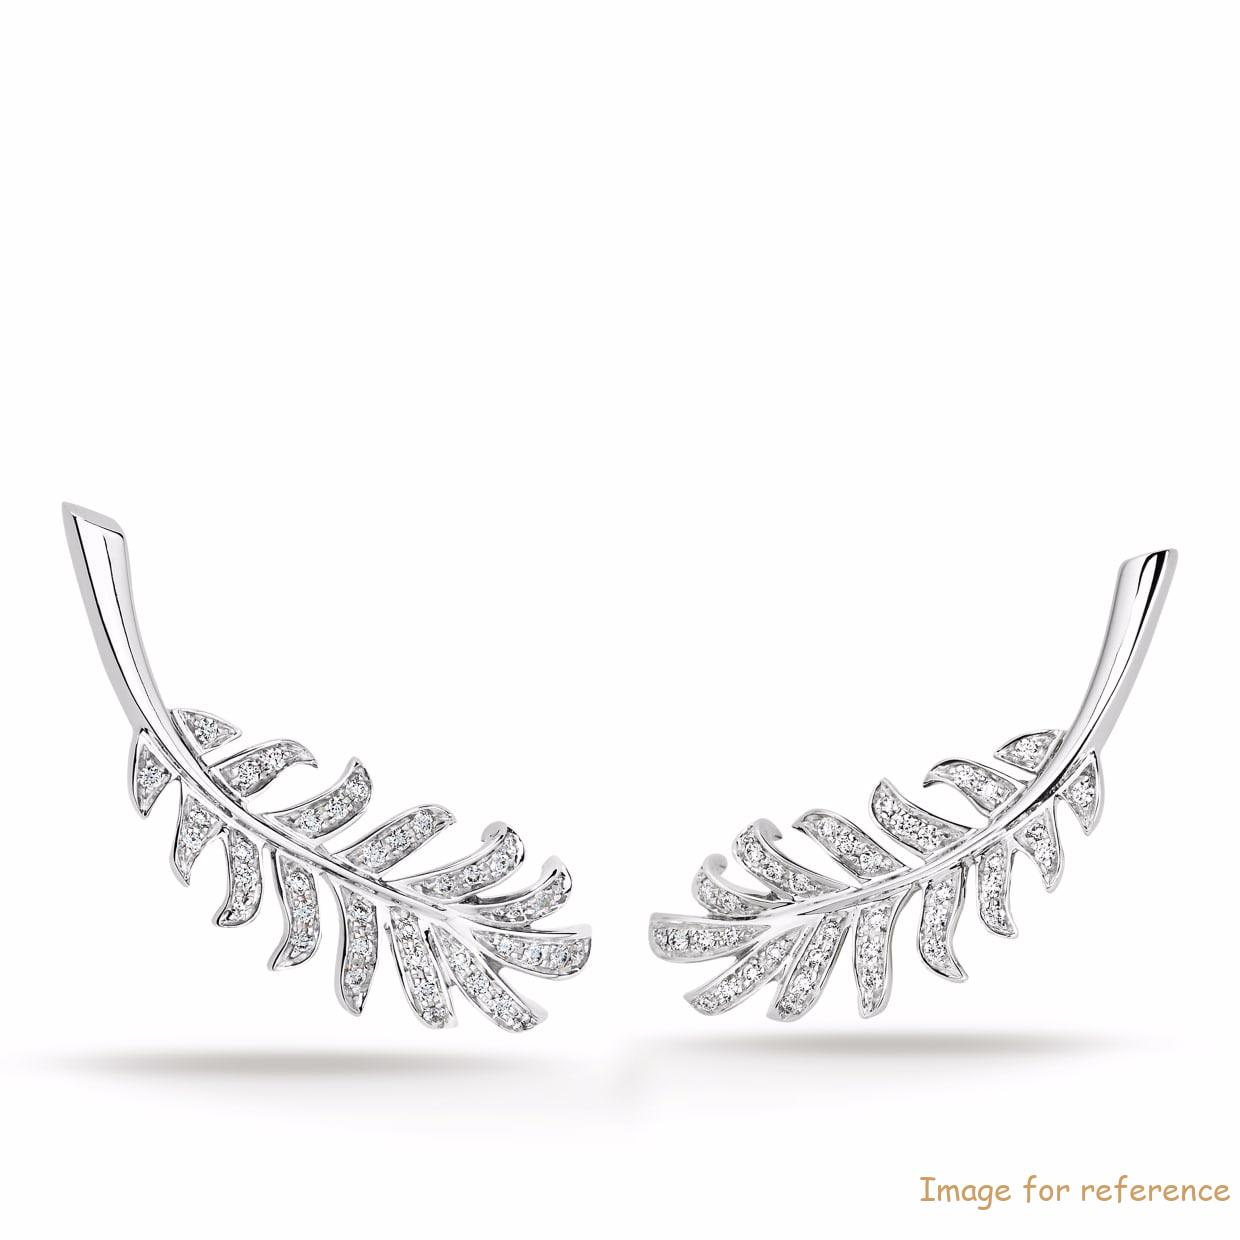 earrings-in-18K-white-gold-and-diamonds